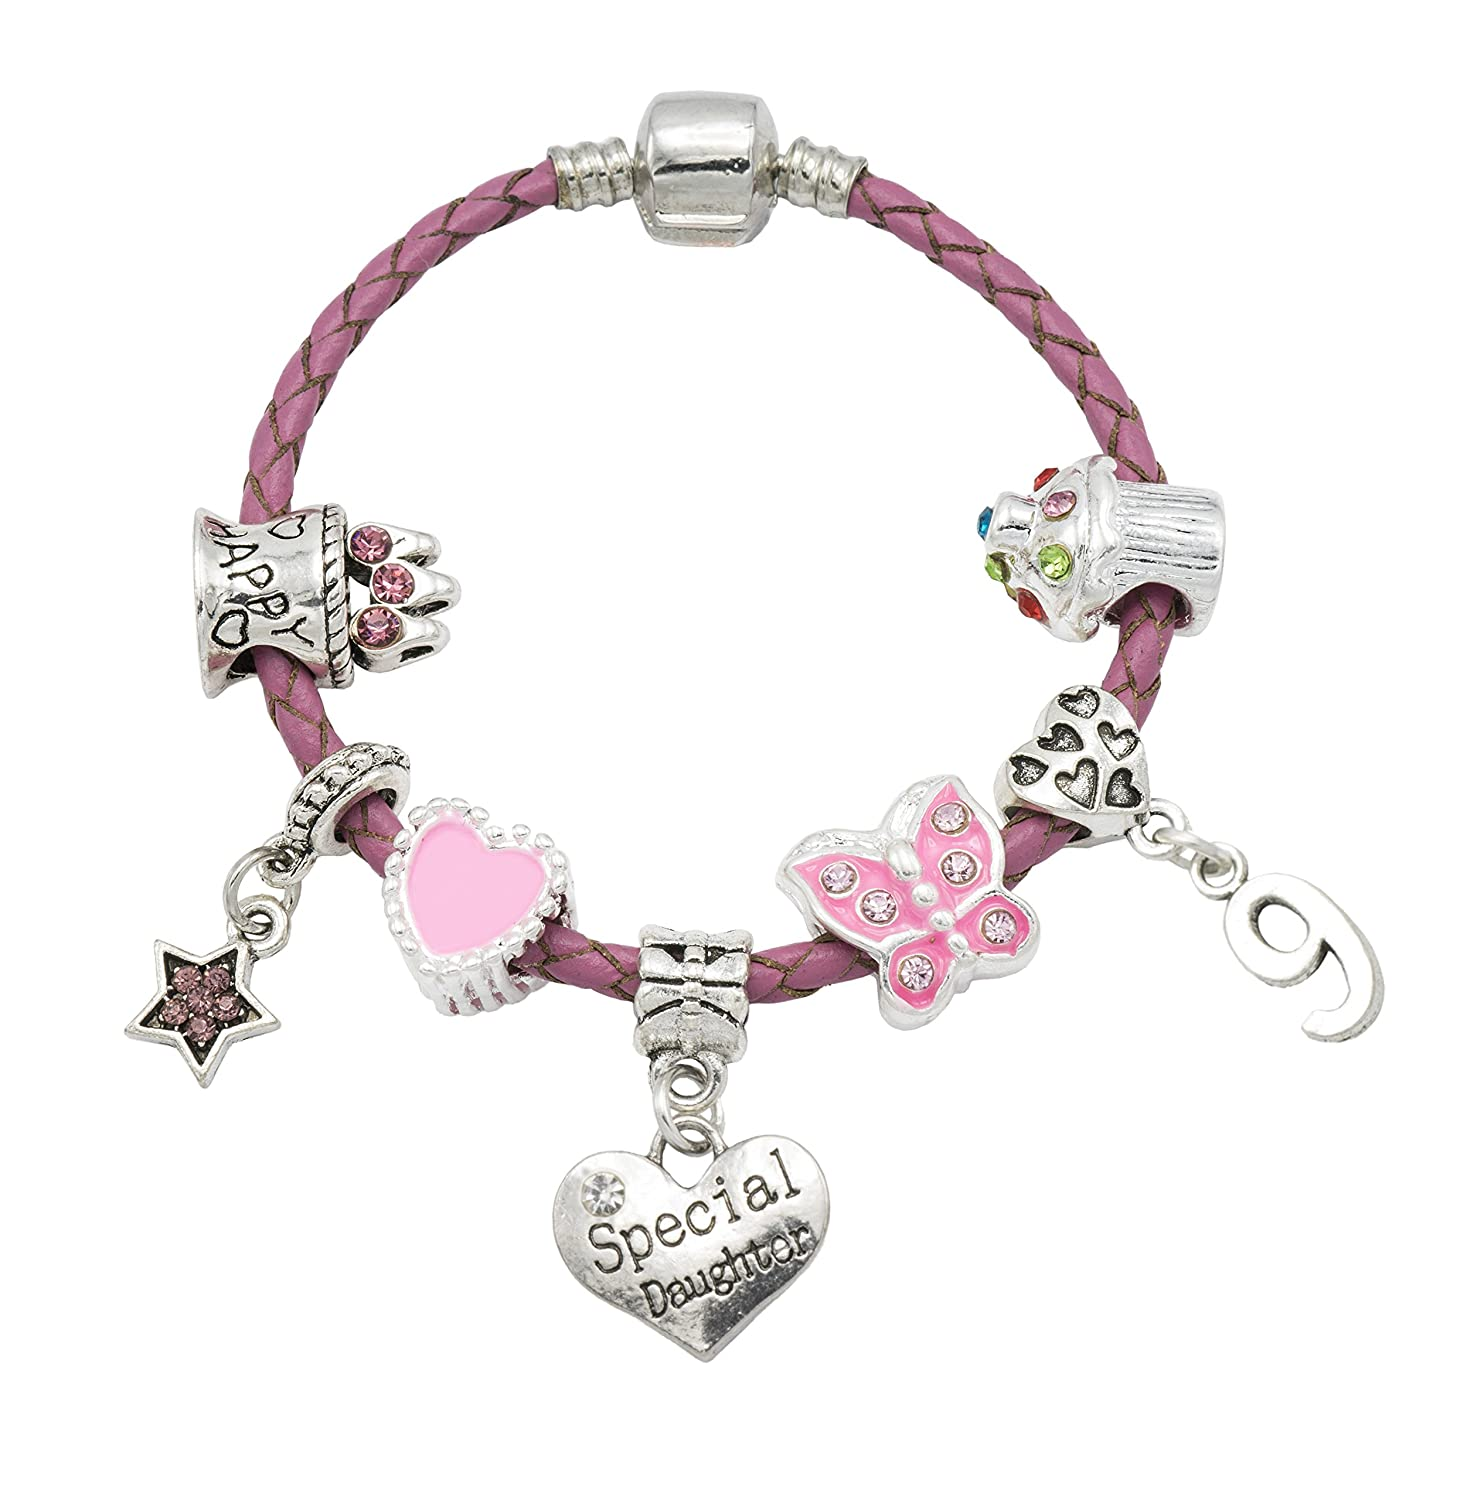 'Special Daughter' - Happy 9th Birthday Bracelet For Girls with Gift Box - Girls Jewellery Jewellery Hut BRSpecial Daughter9-17